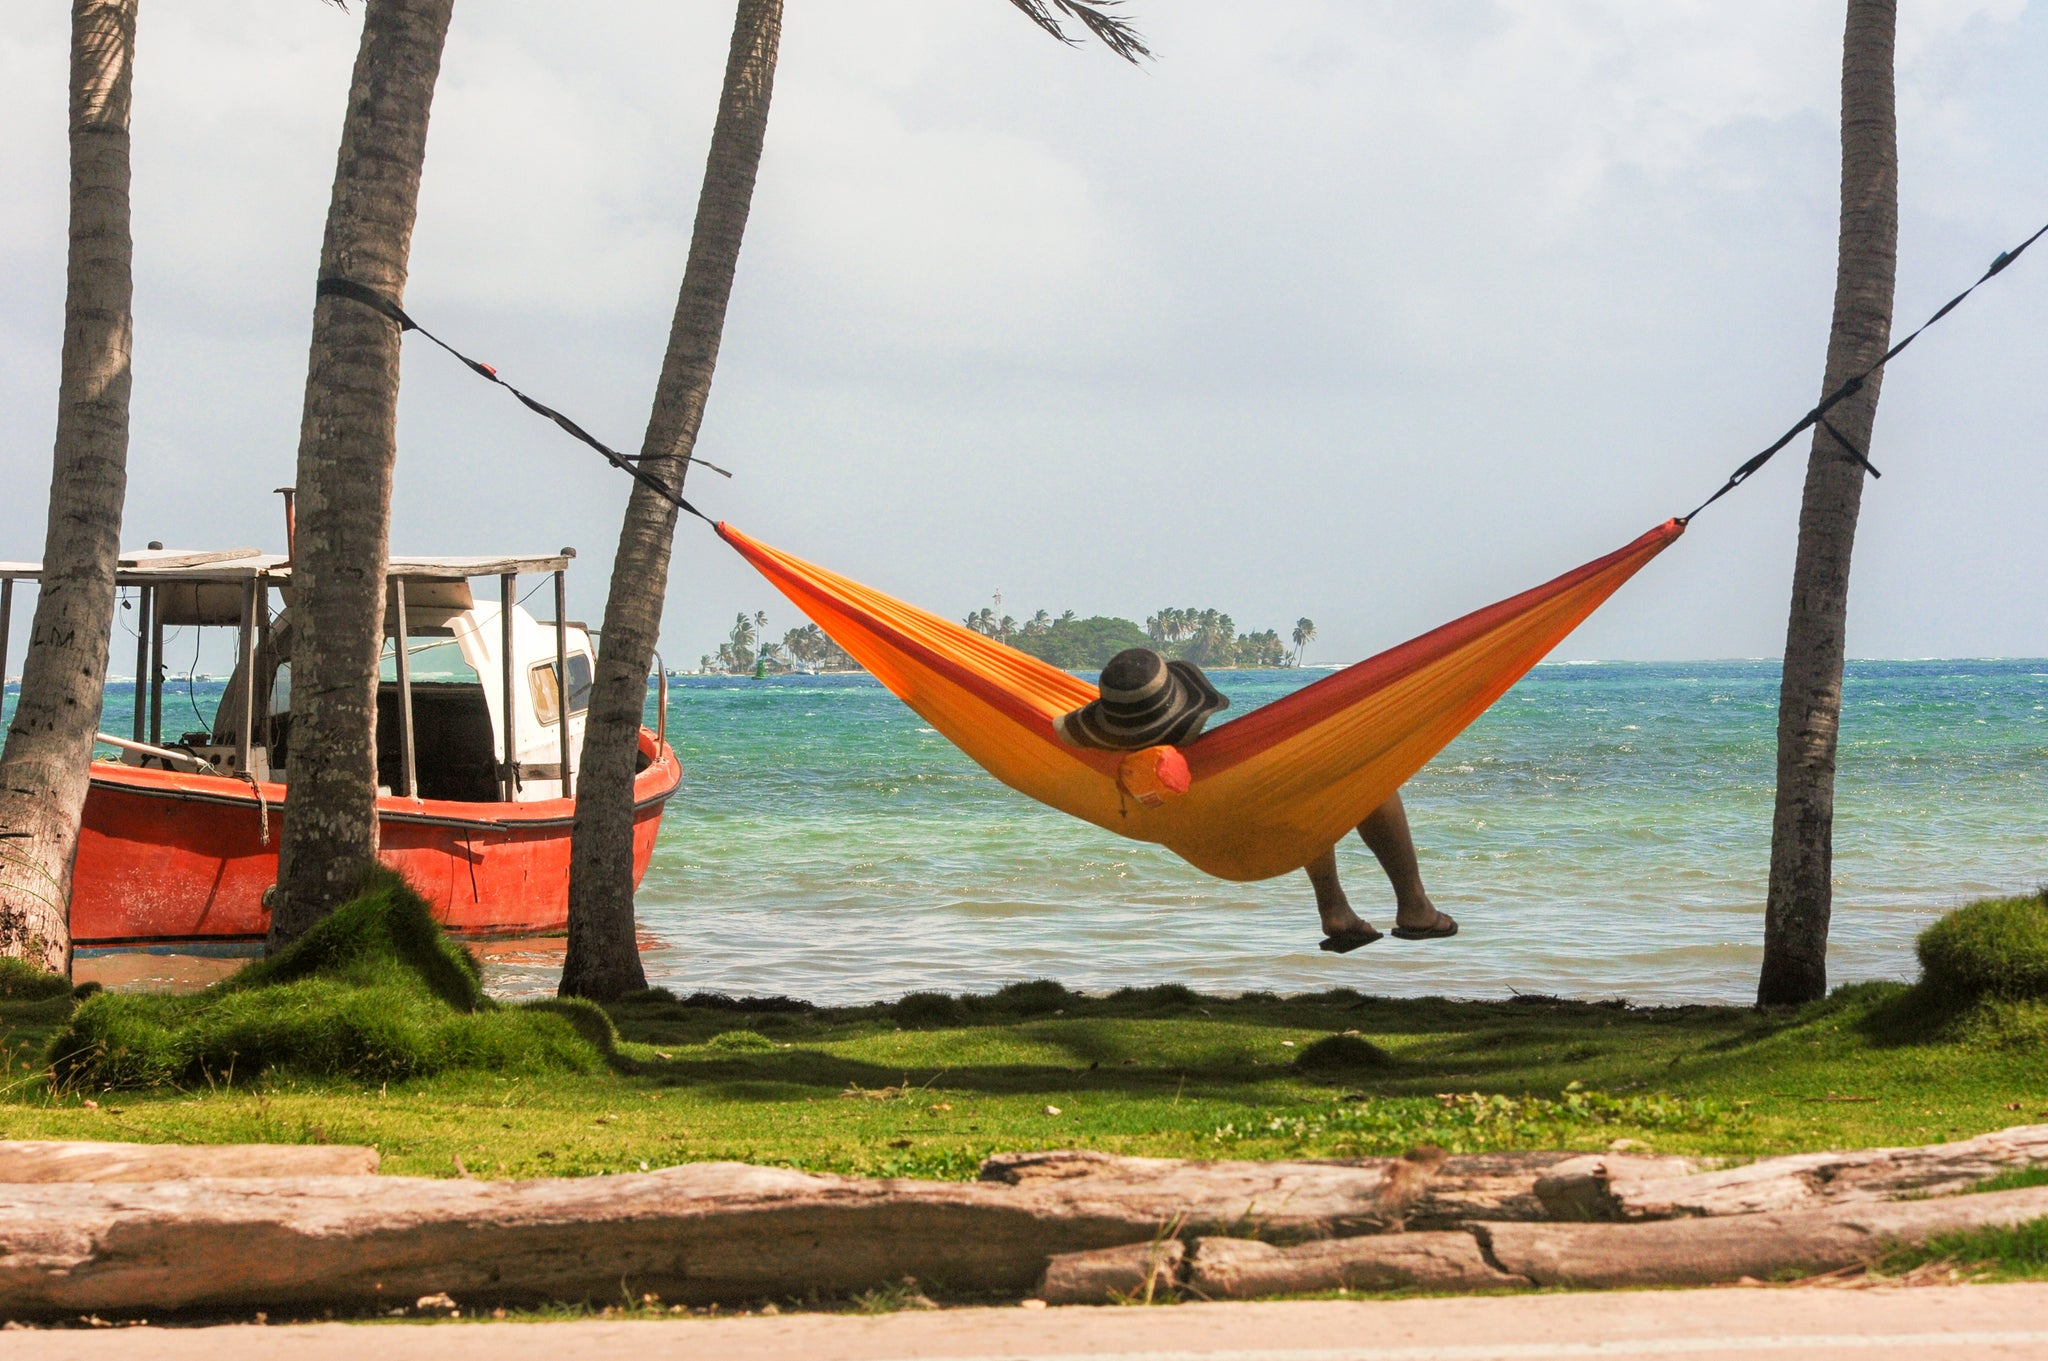 HOW HAMMOCKS CAN HELP PEOPLE DEAL WITH MENTAL HEALTH ISSUES